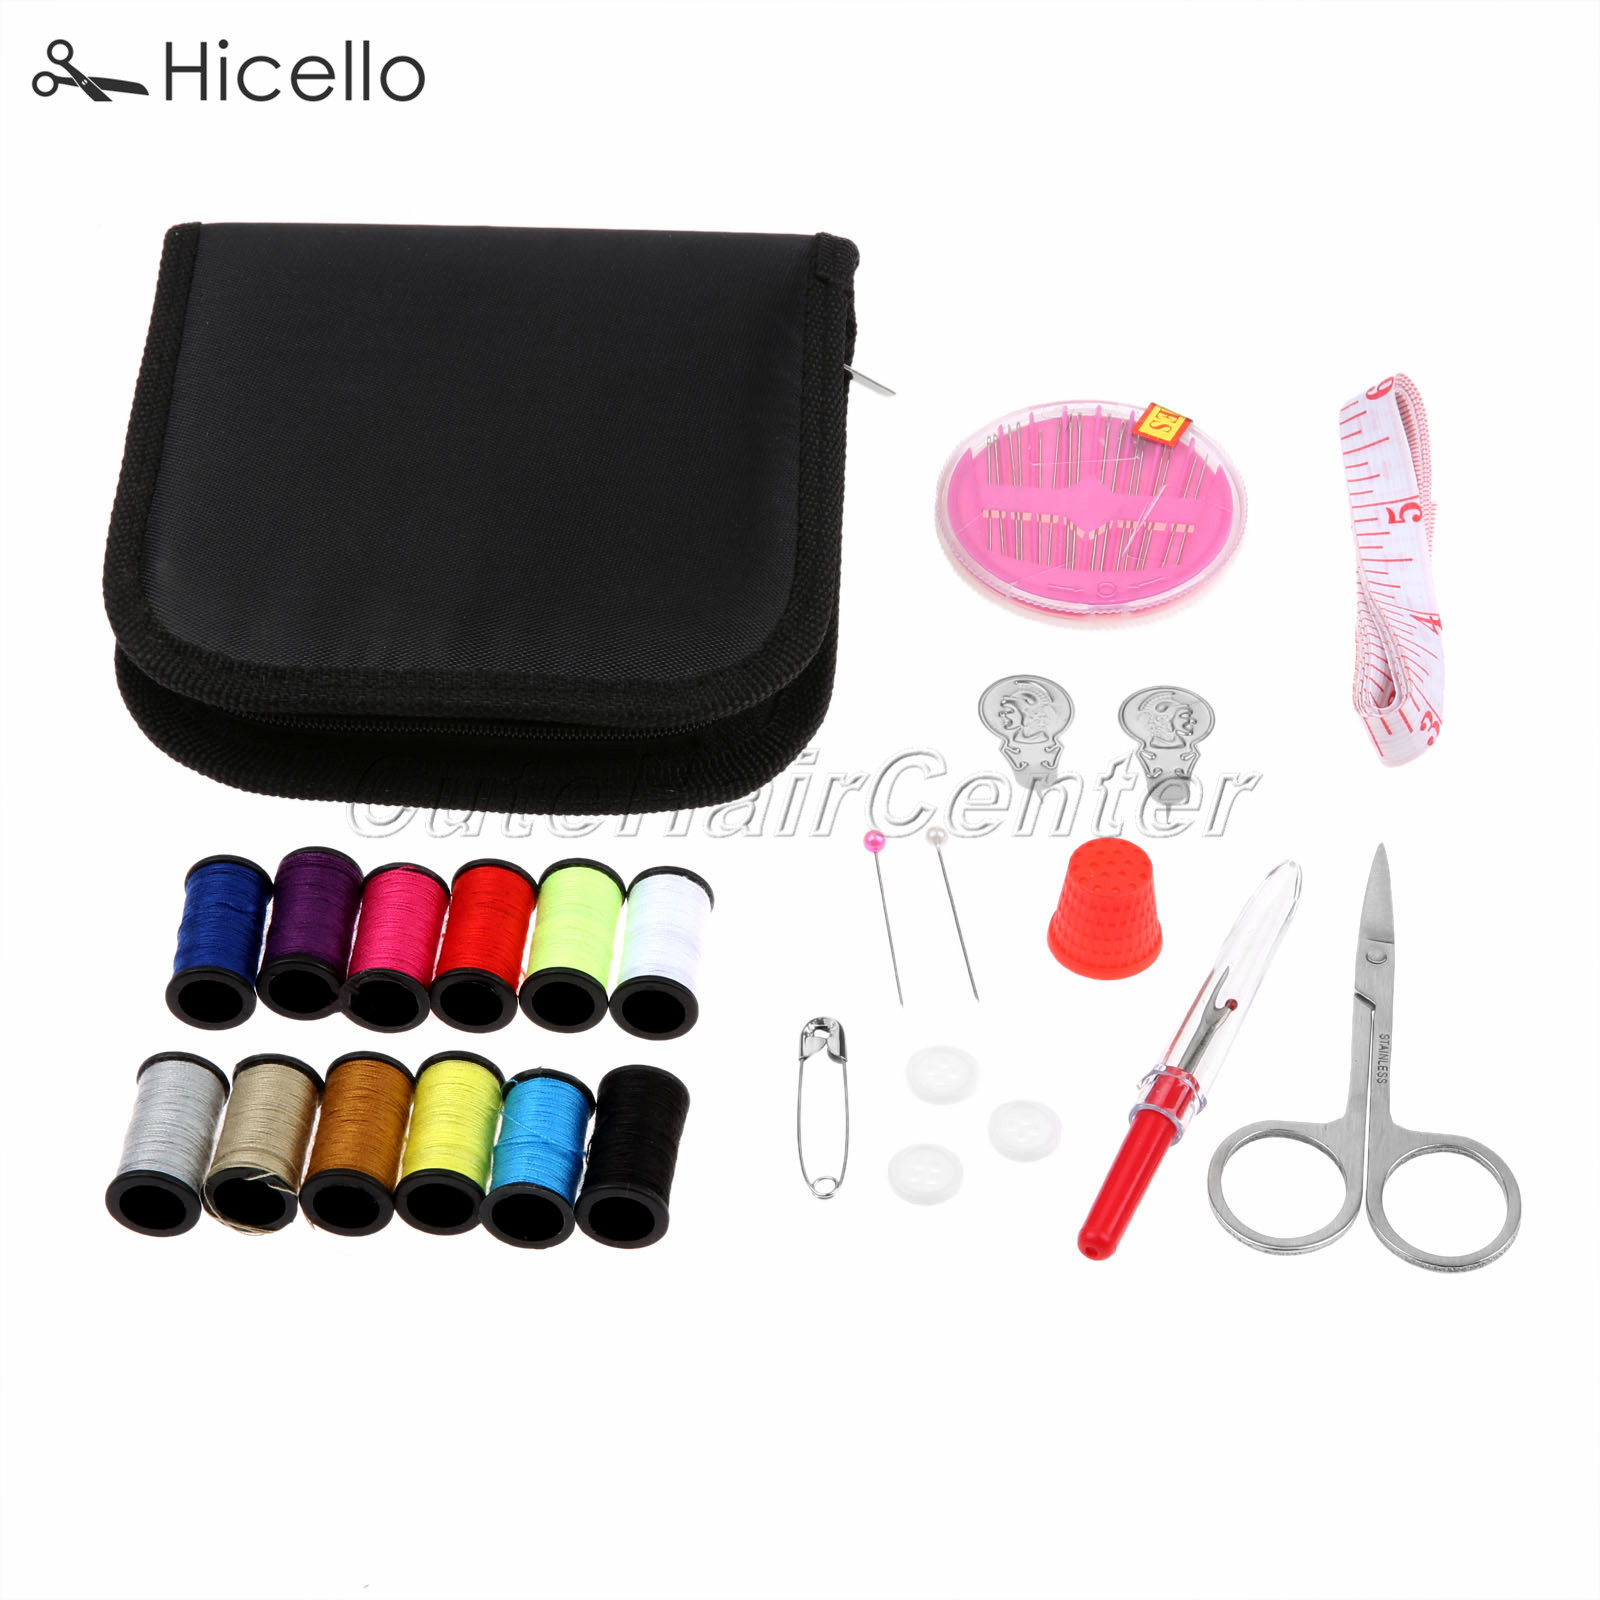 Sewing Kits with bag threads needles scissor pin ruler tool box Portable travelling Sewing set Household tool Gift Hicello